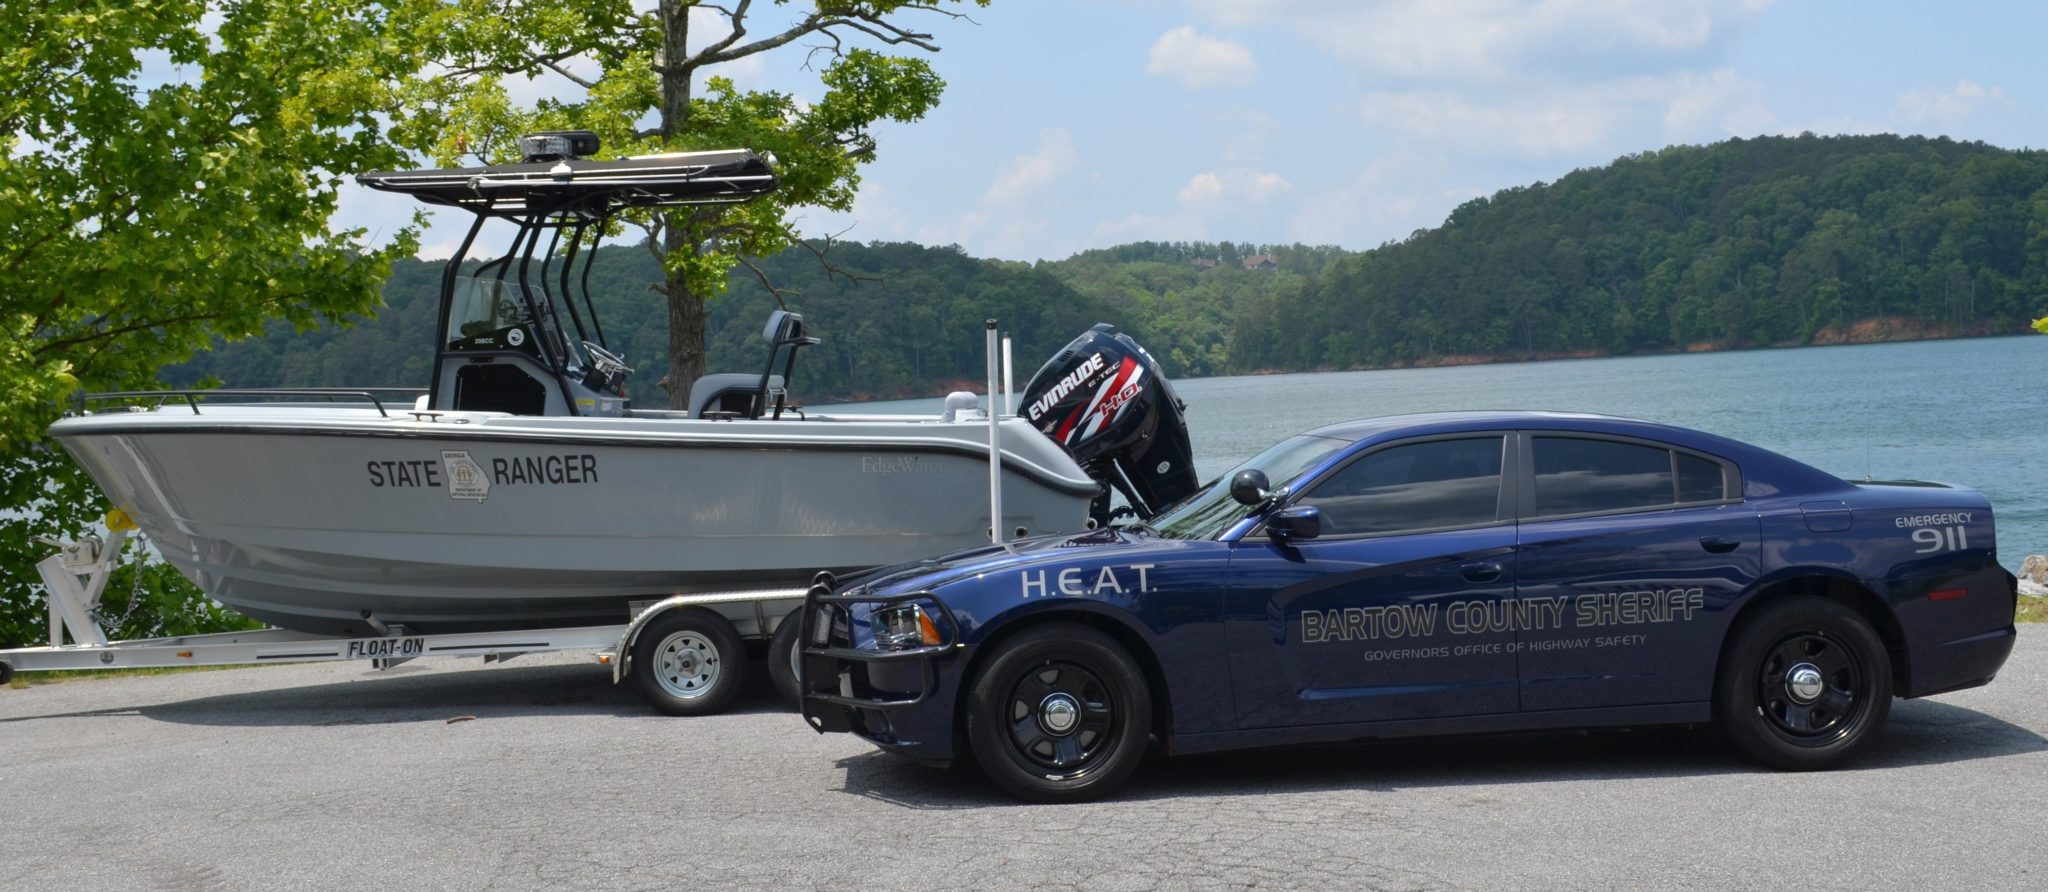 Two New Boat Launches Completed Summer ! Recently, Forsyth County and Bartow County completed new public access points along the Etowah River .